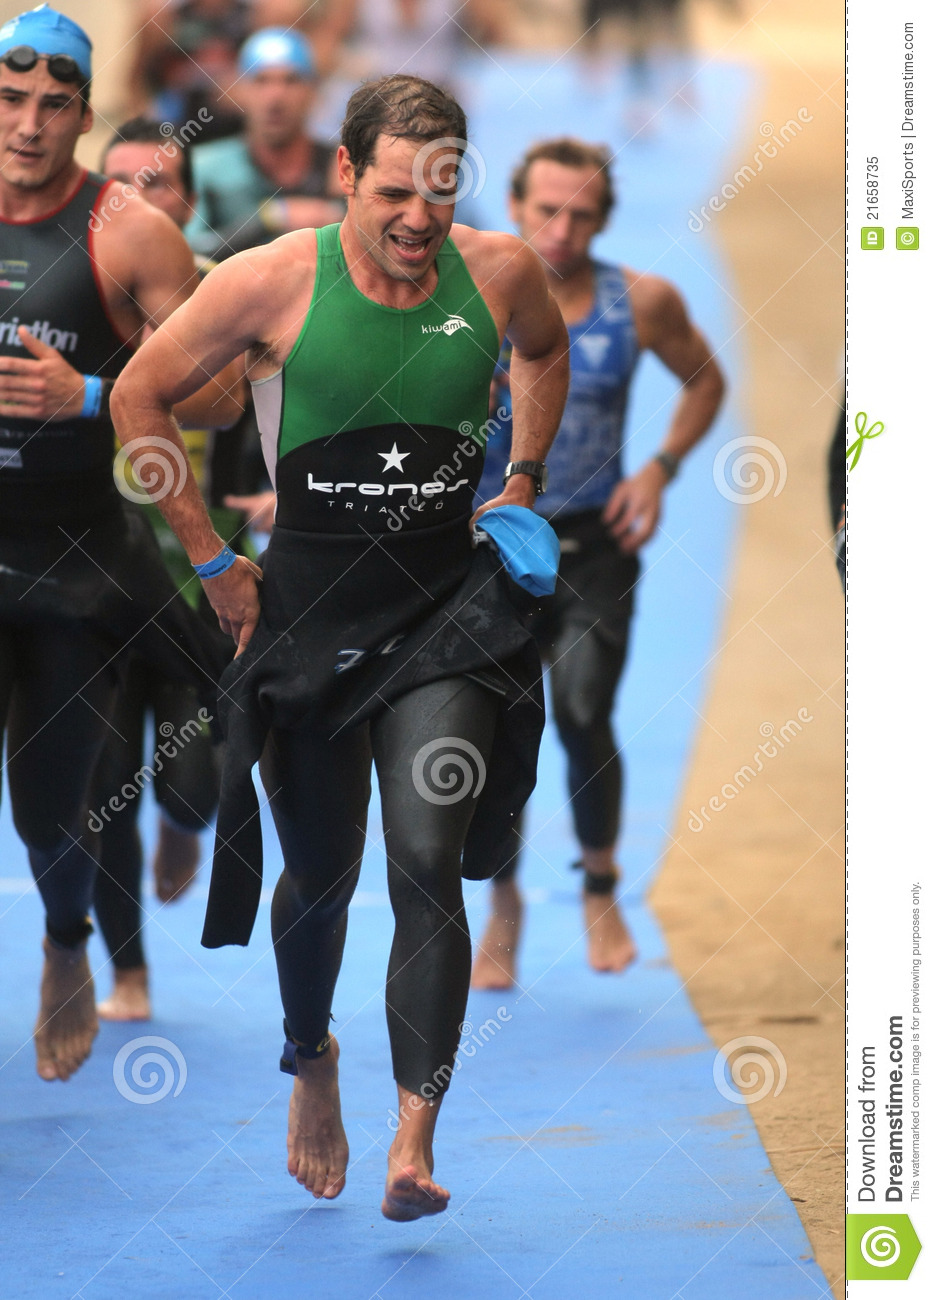 Triathletes sur la zone de passage